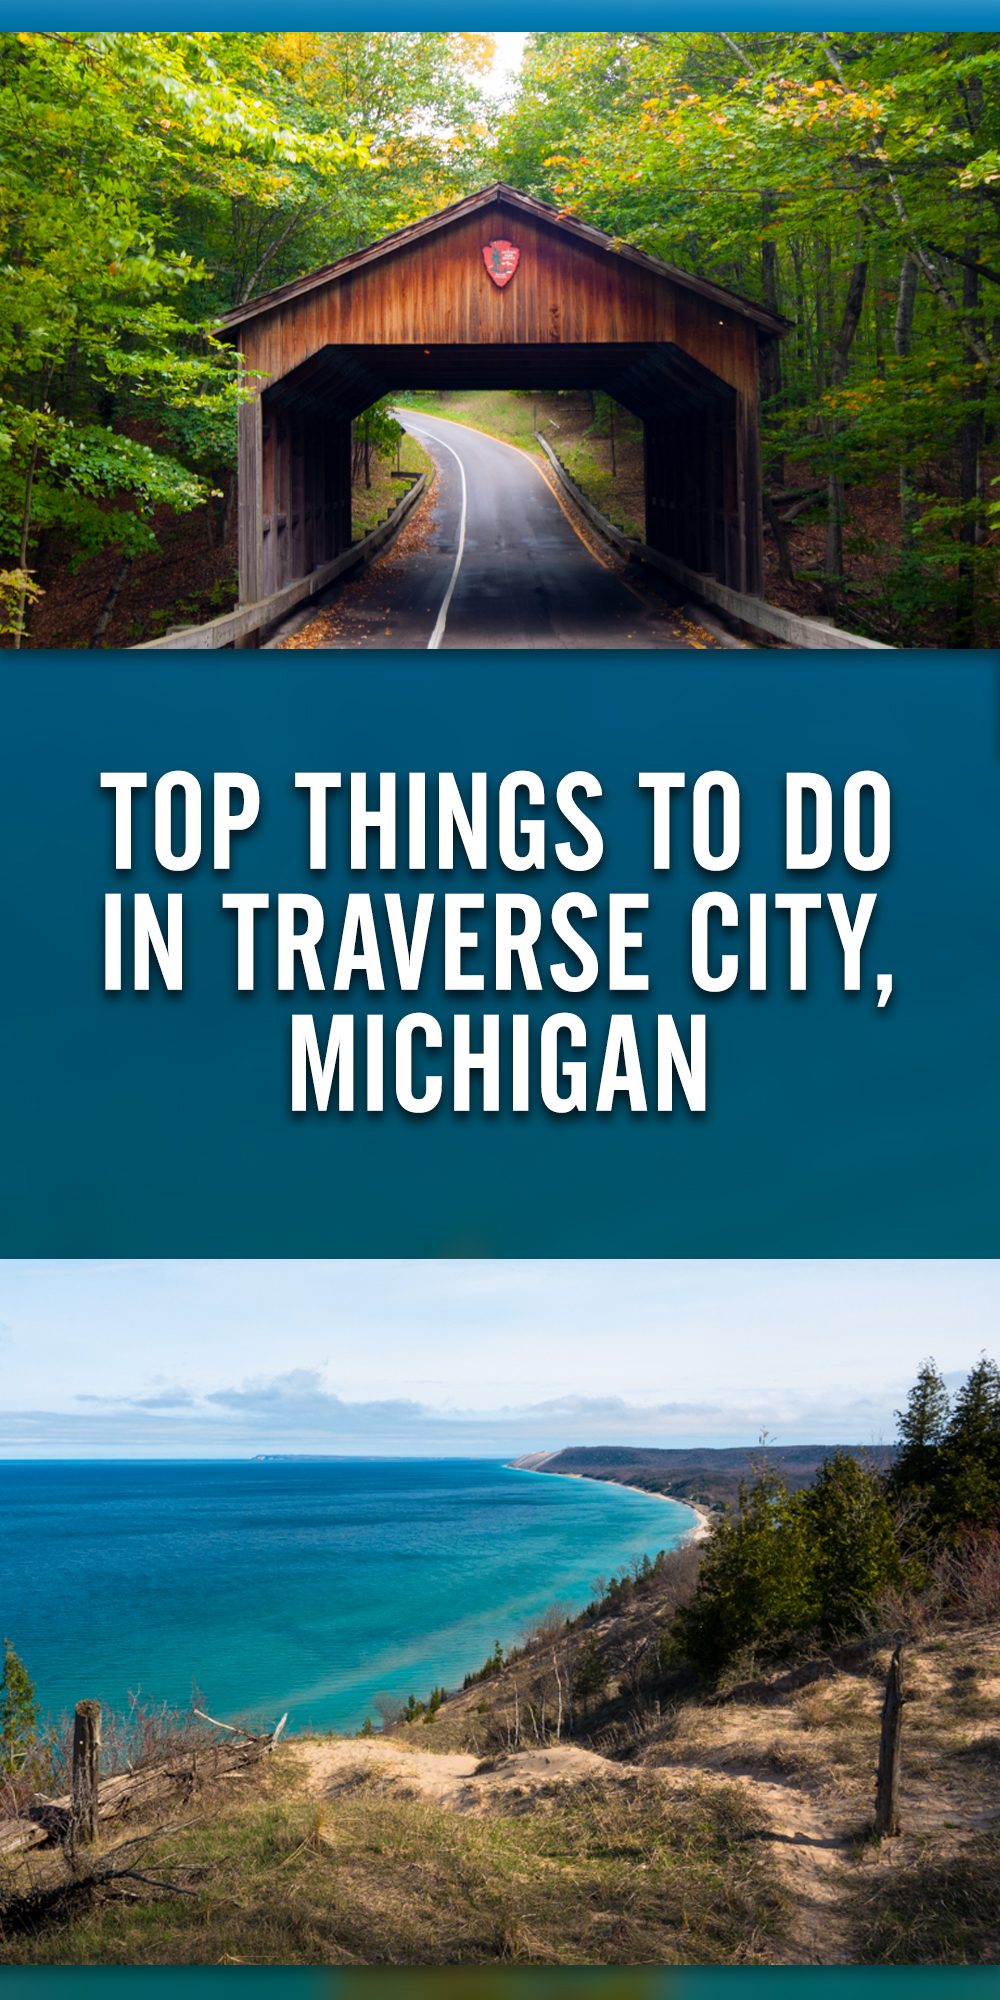 A travel guide on the top things to do in Traverse City, Michigan. #M22 #TraverseCity #Michigan #Fall #travel #trip #PureMichigan #NorhternMichigan #colortour #getaway